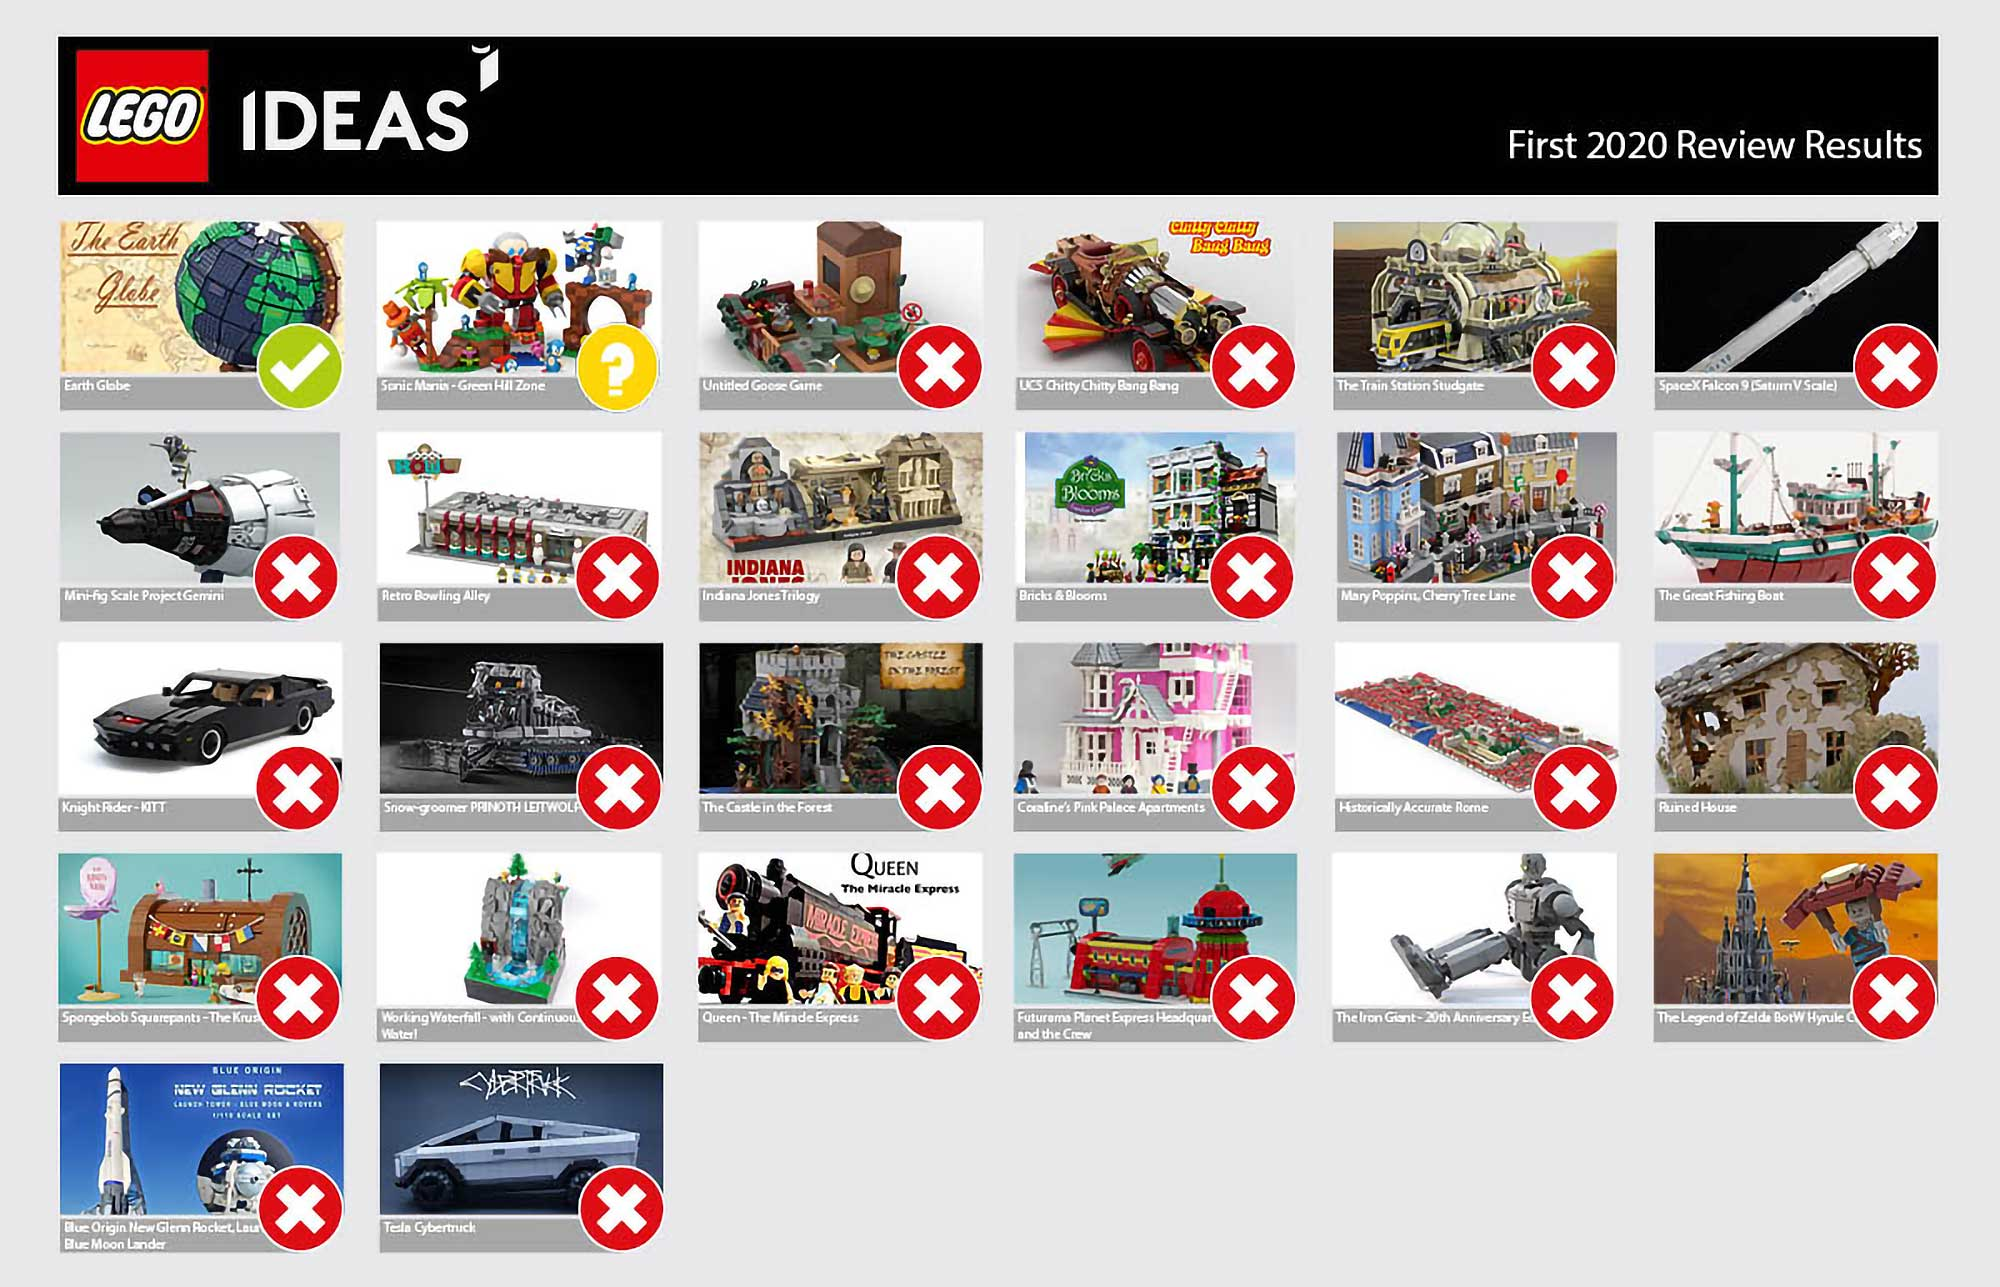 LEGO Ideas First 2020 Review Results